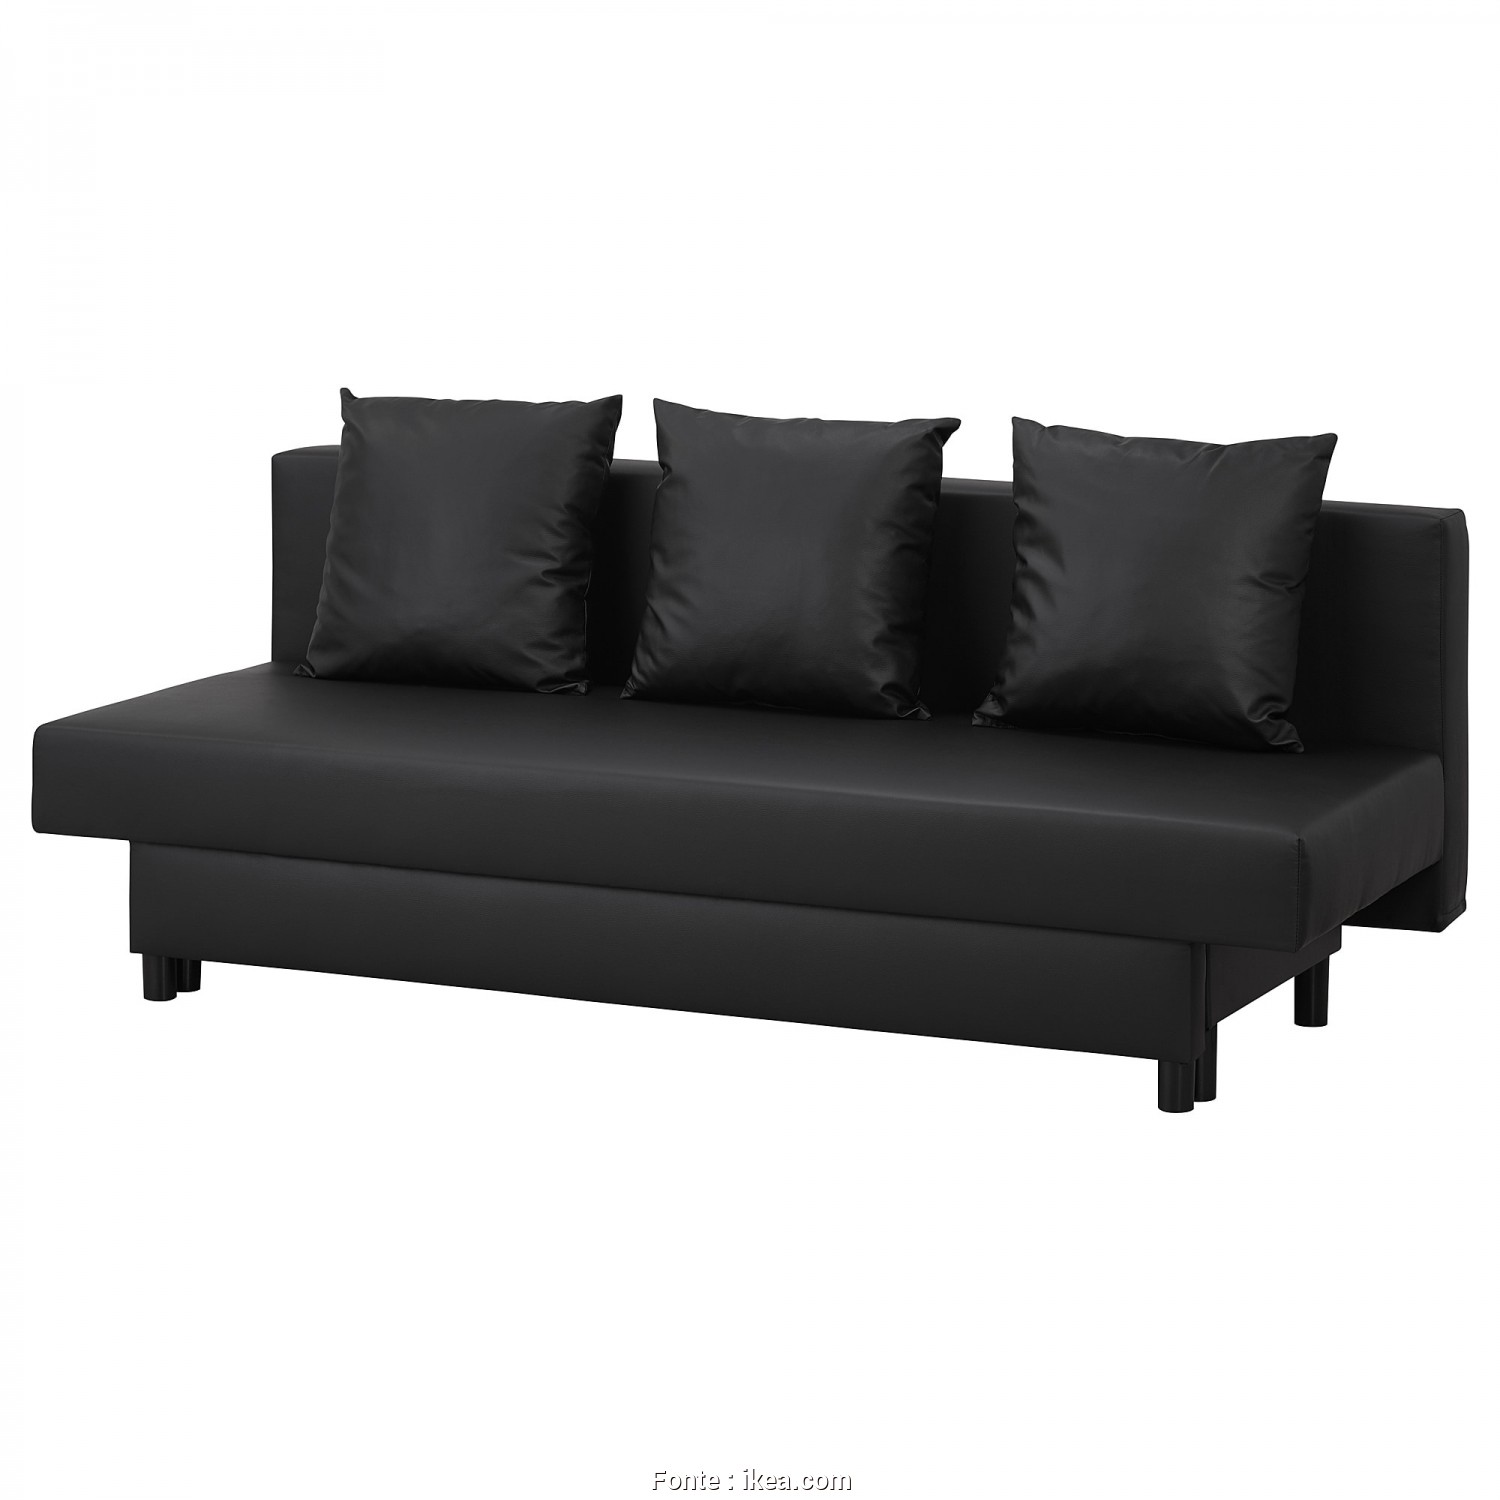 Ikea Asarum Assembly, Loveable IKEA ASARUM 3-Seat Sofa-Bed Readily Converts Into A Bed